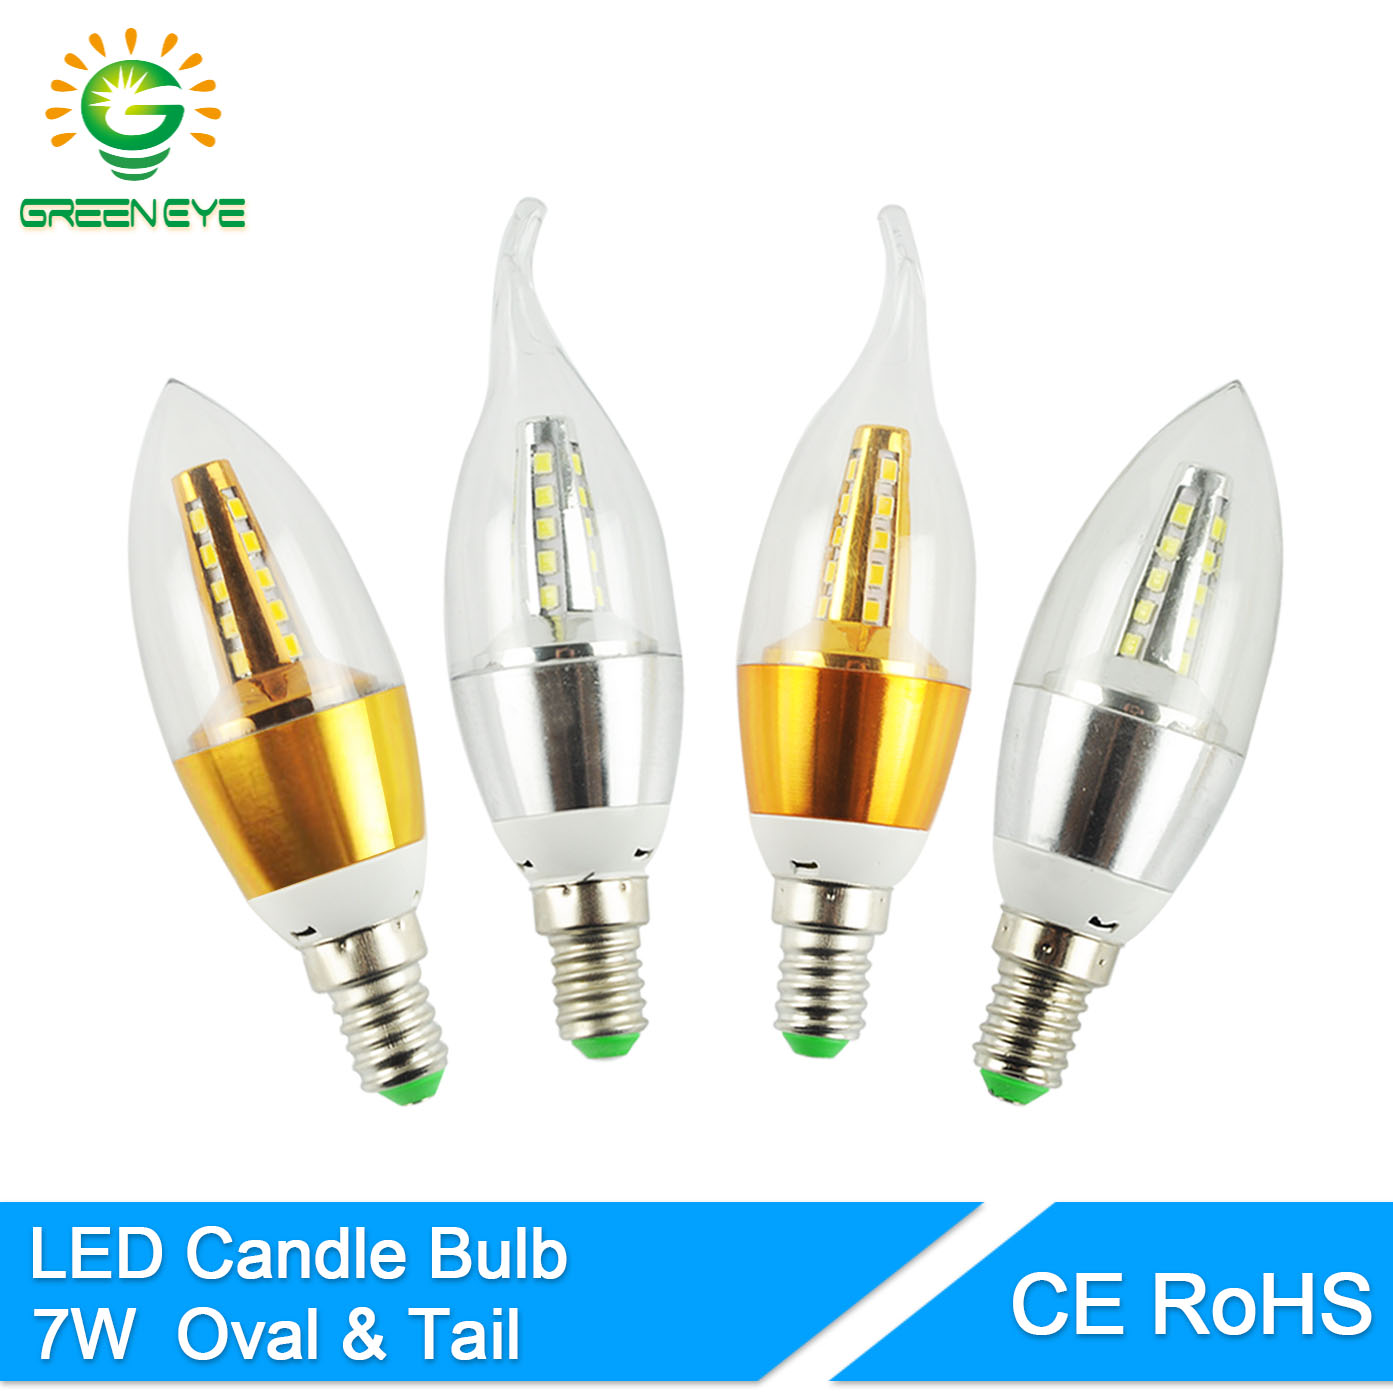 GreenEye High Bright Velas Lampara Led E14 Candle LED Bulb 7w LED Light Lamp 220V Golden Silver Cool Warm White Ampoule 9w 12w